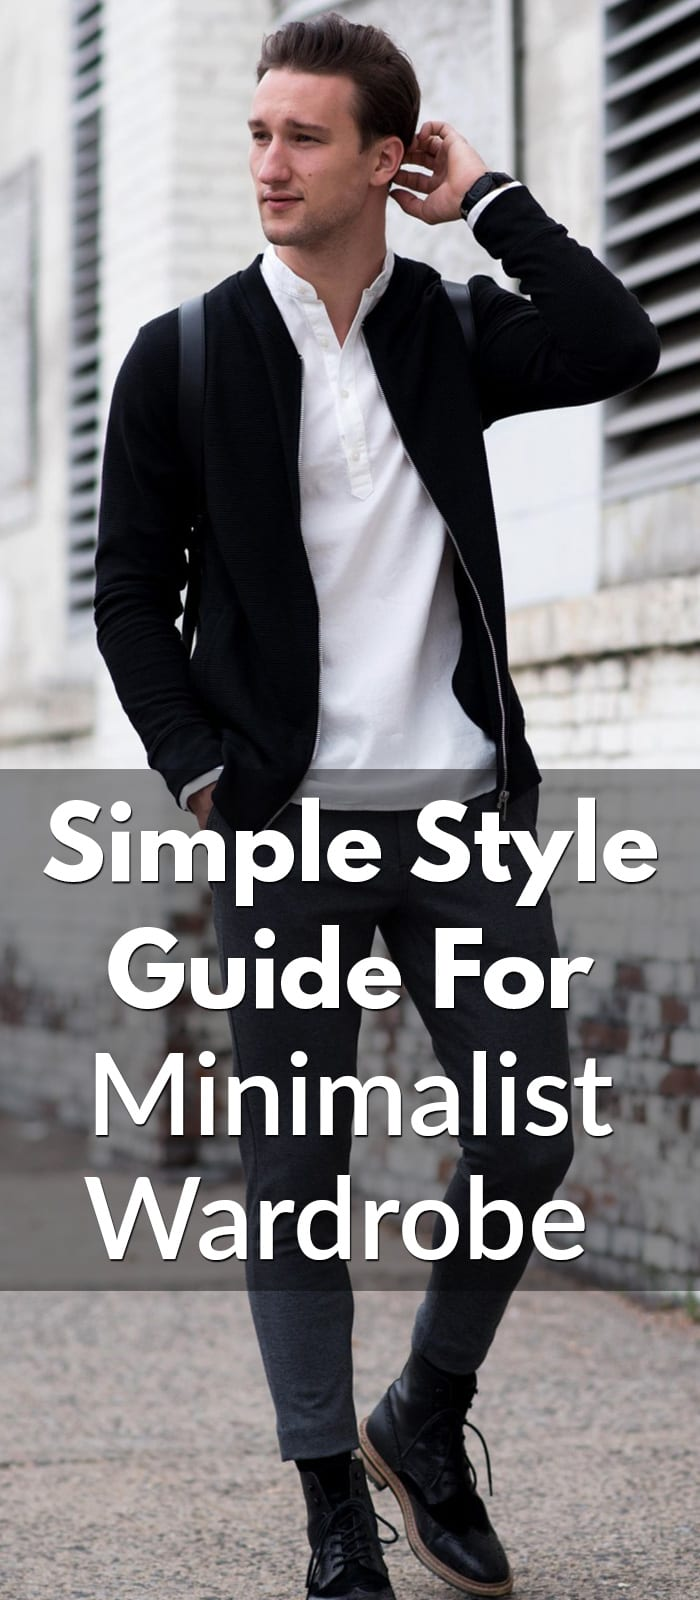 Simple Style Guide For Minimalist Wardrobe